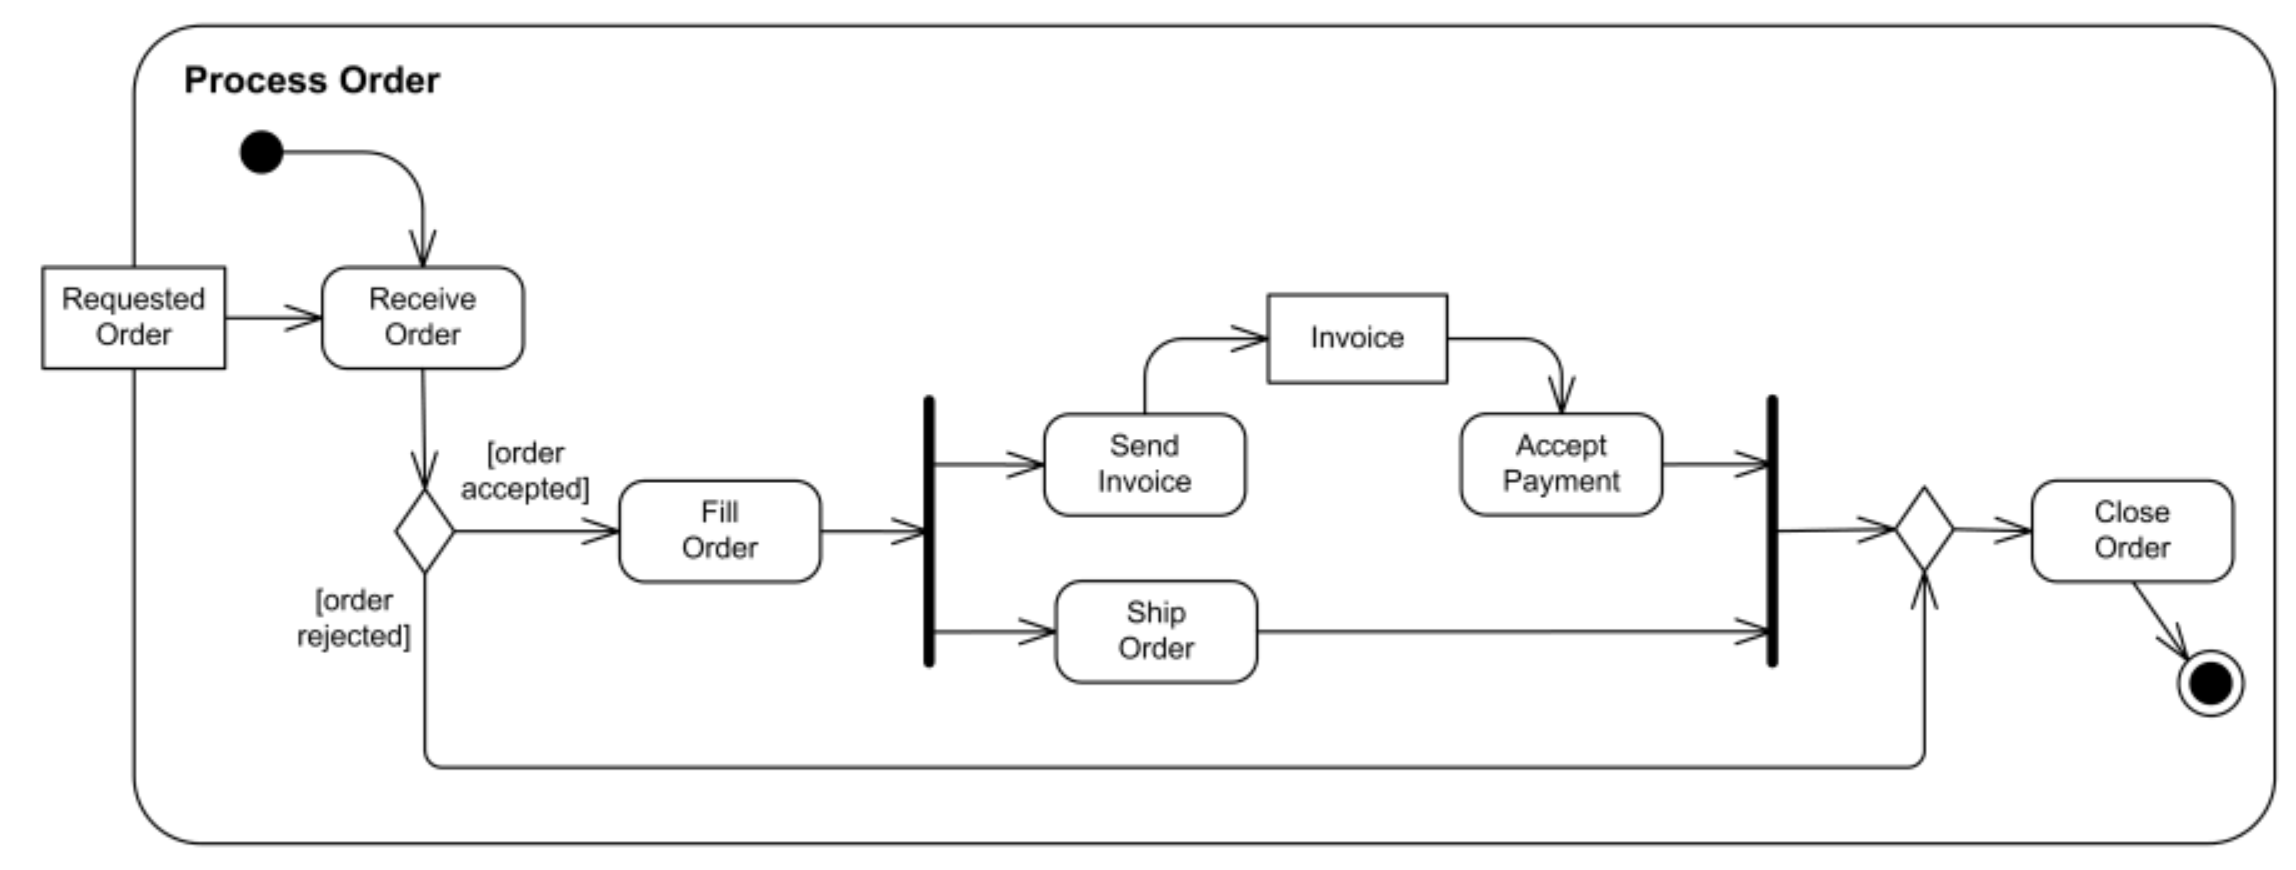 uml-tutorial-activity-diagram-example-order-processing